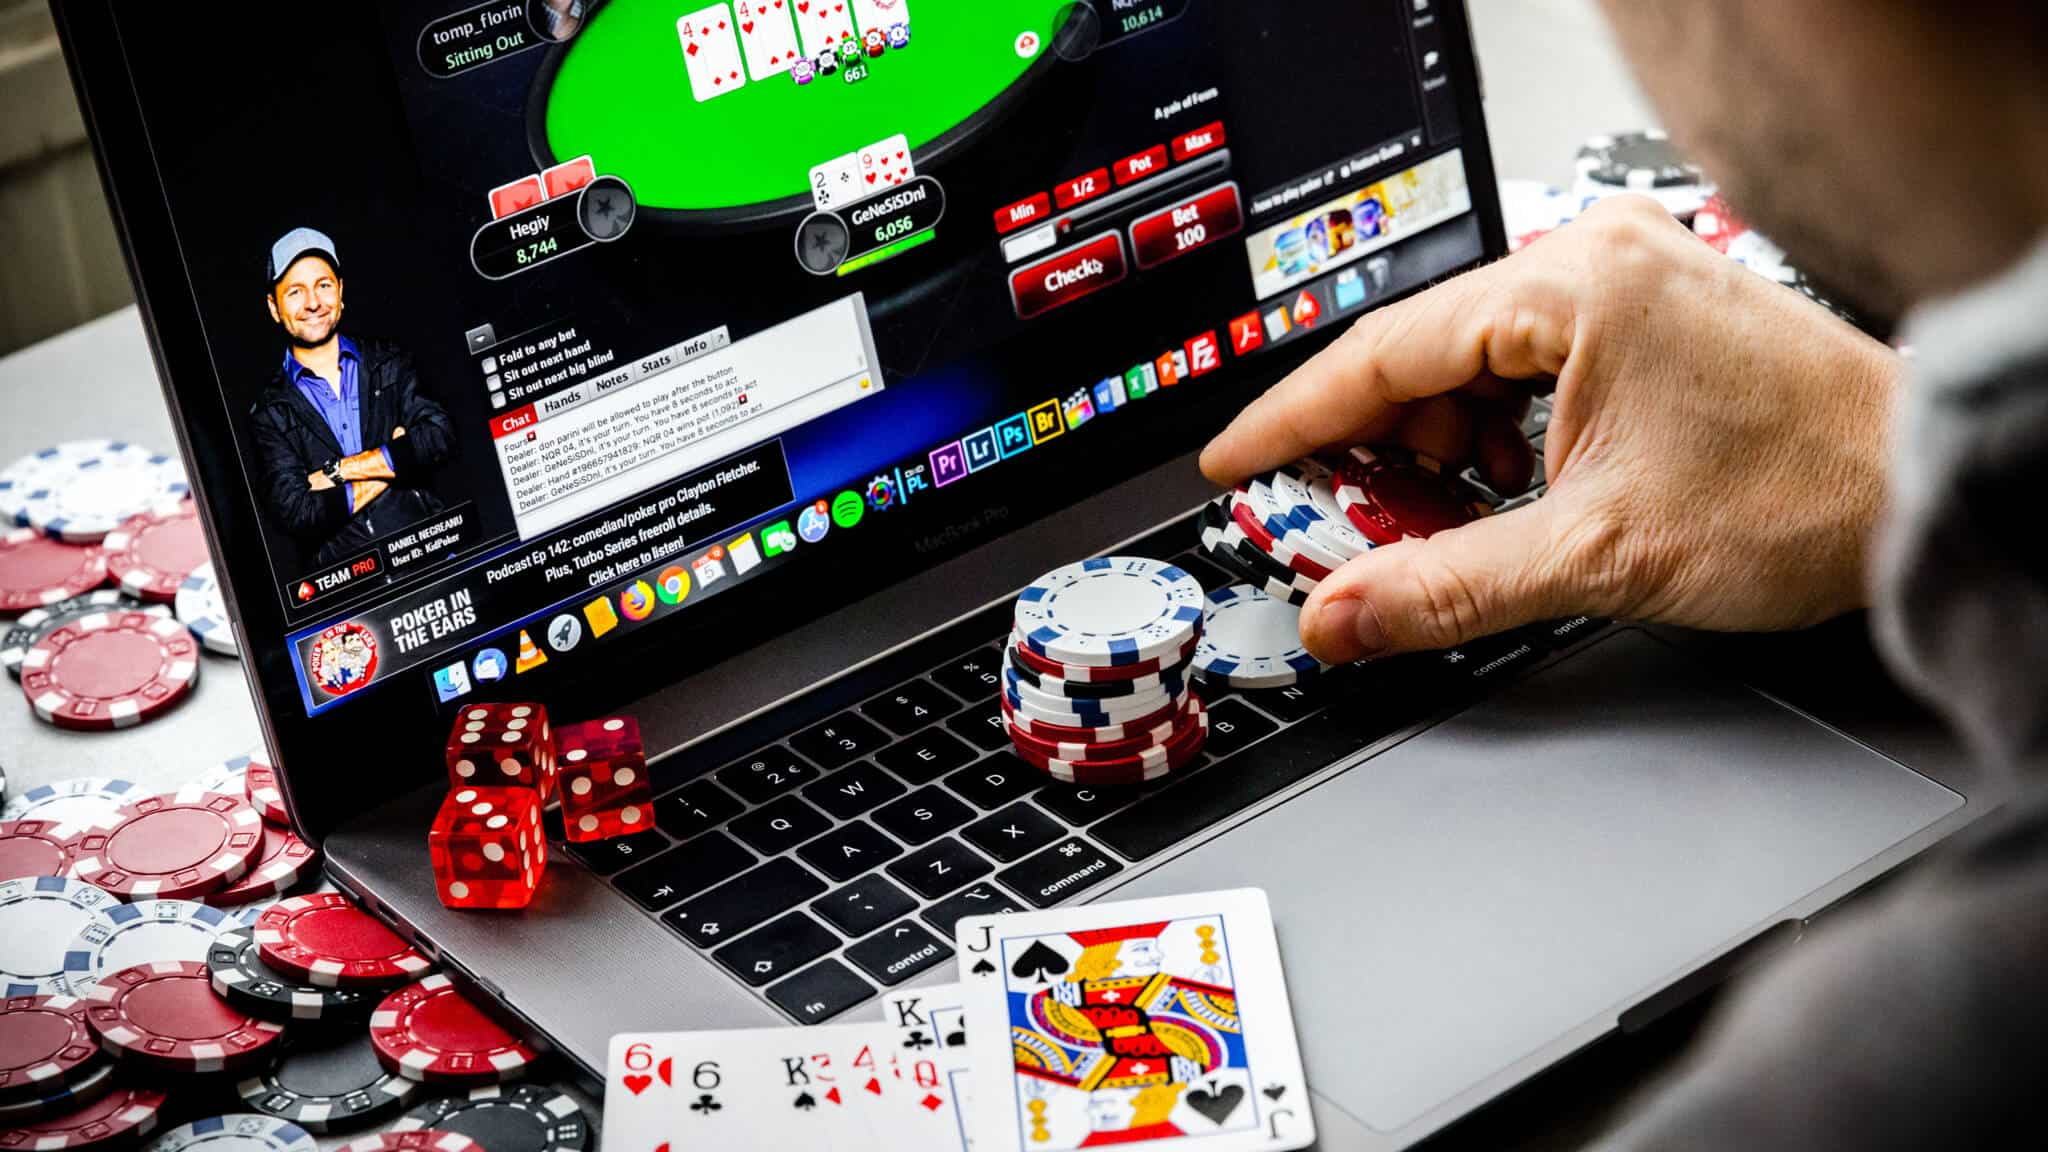 Malaysia Online Casino for the extra, quick and safe cash